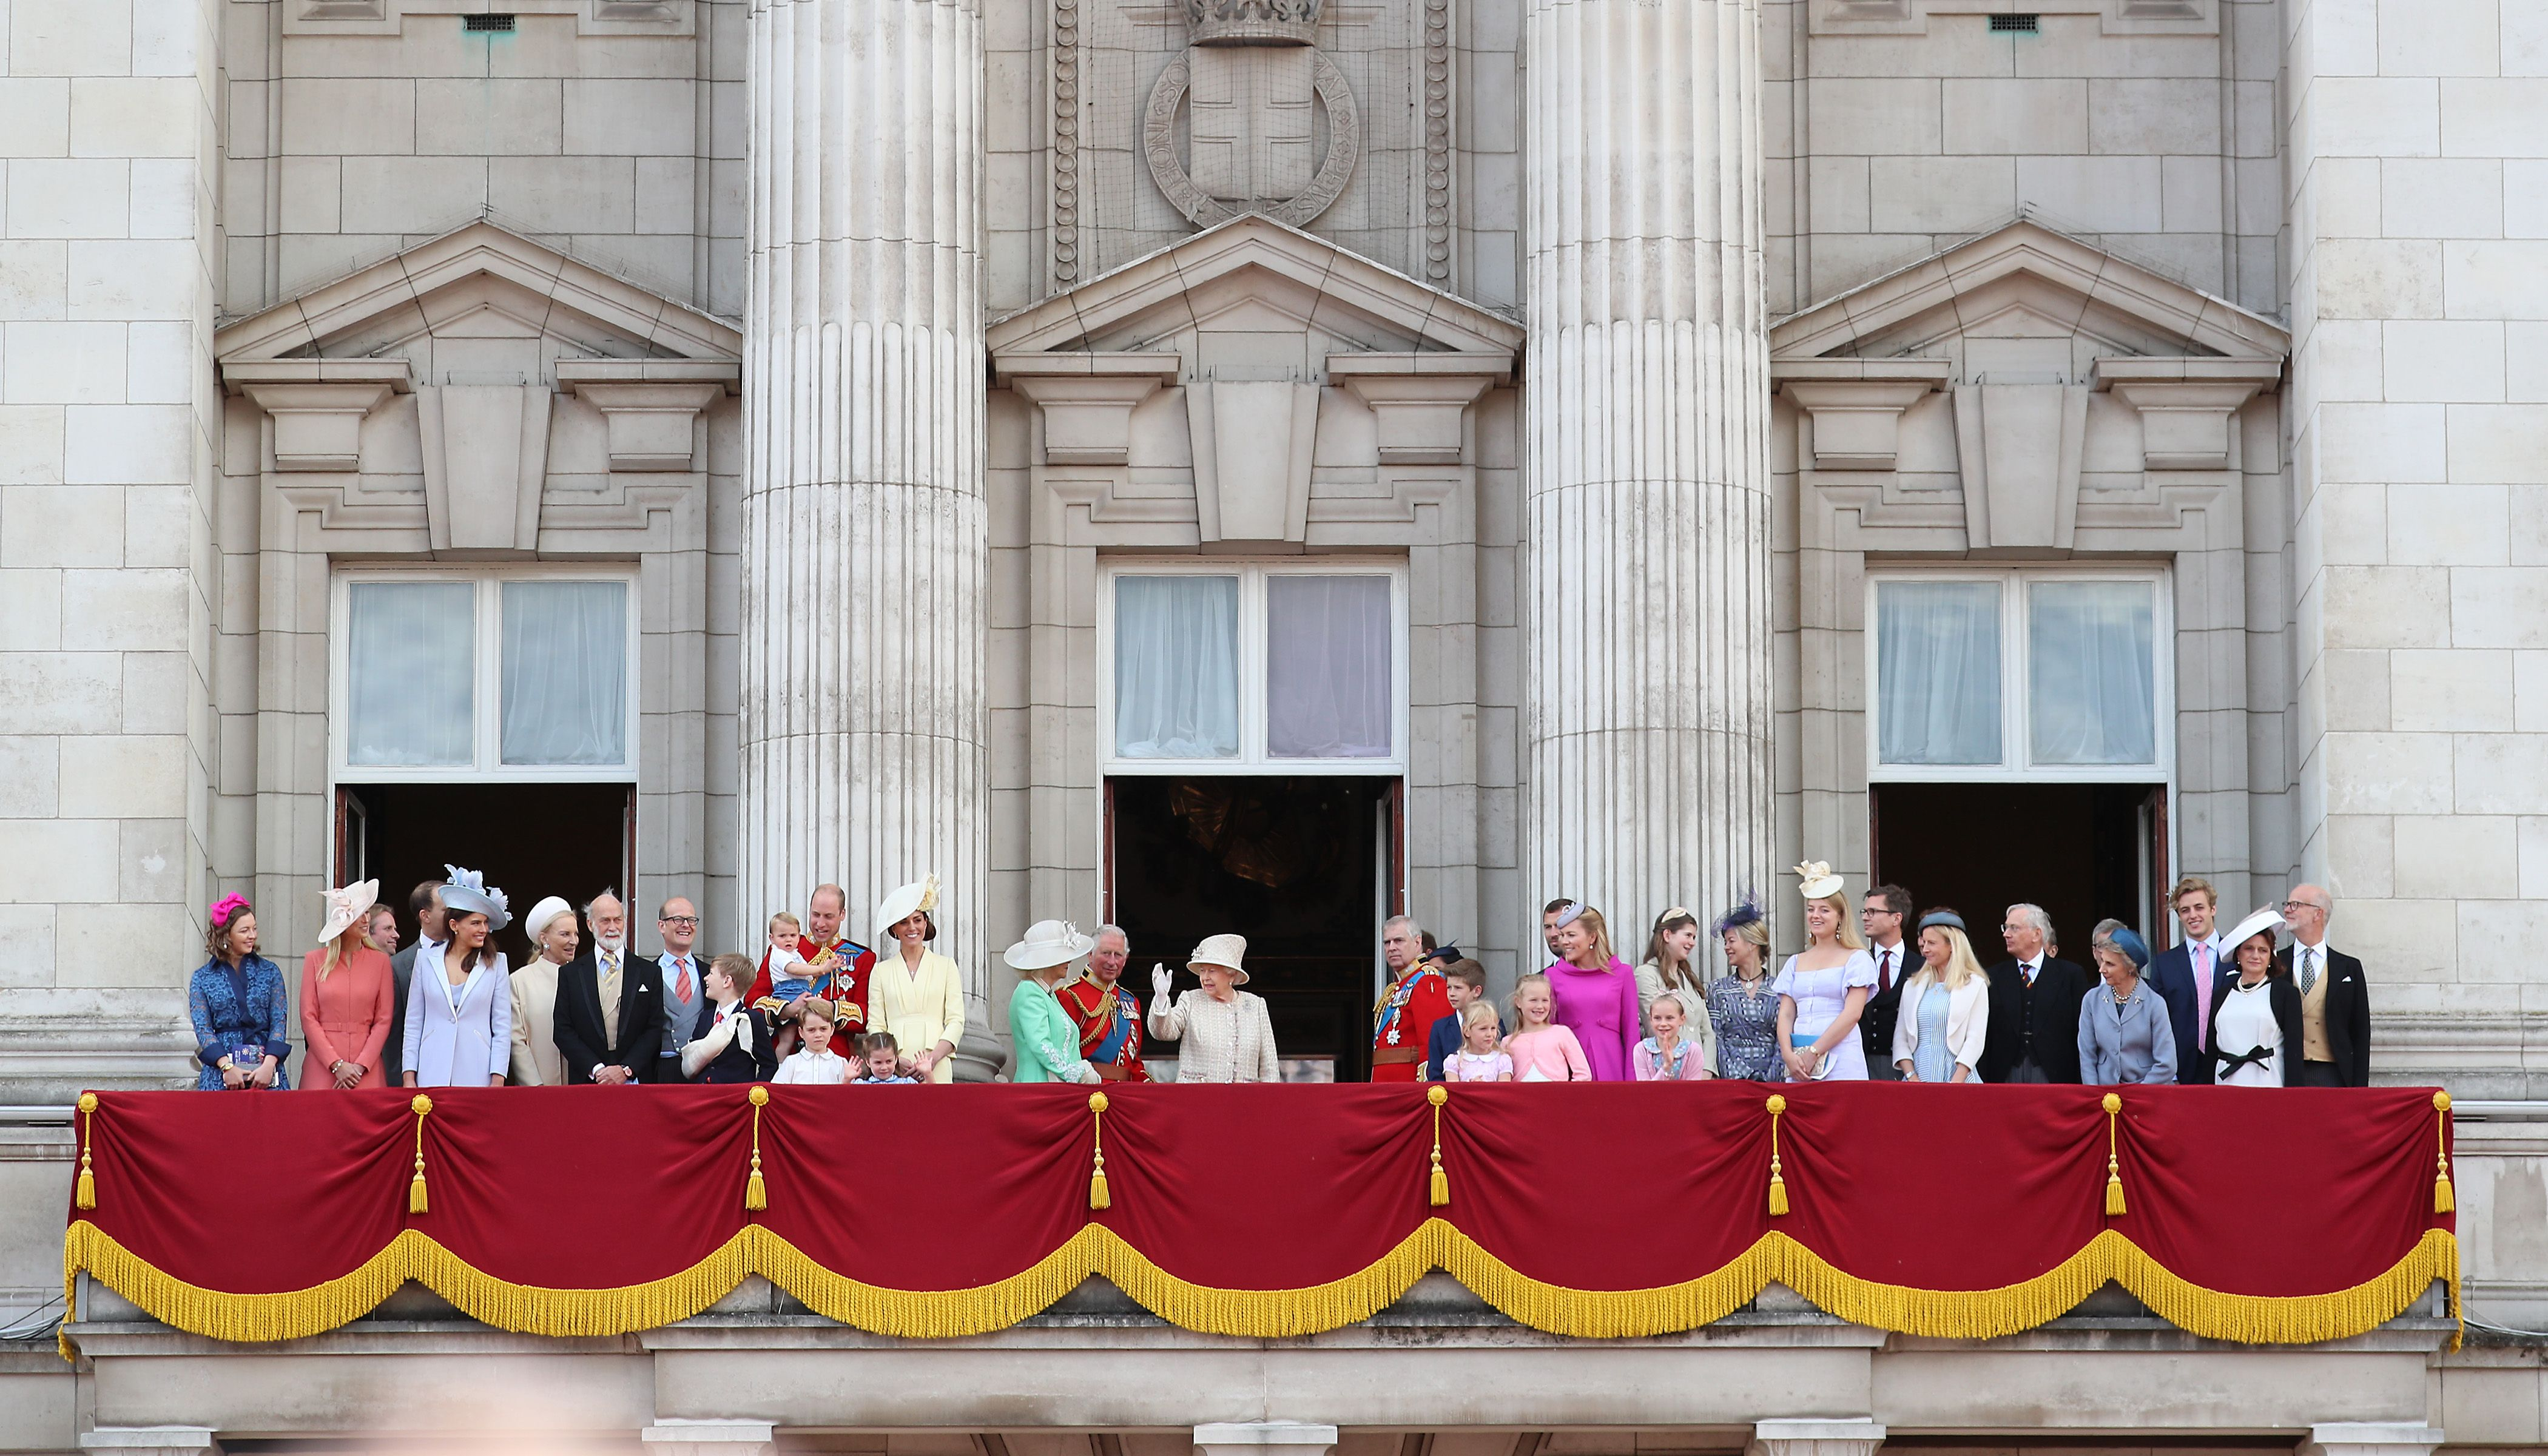 Every Photo from Trooping the Colour 2019 - Queen's Birthday